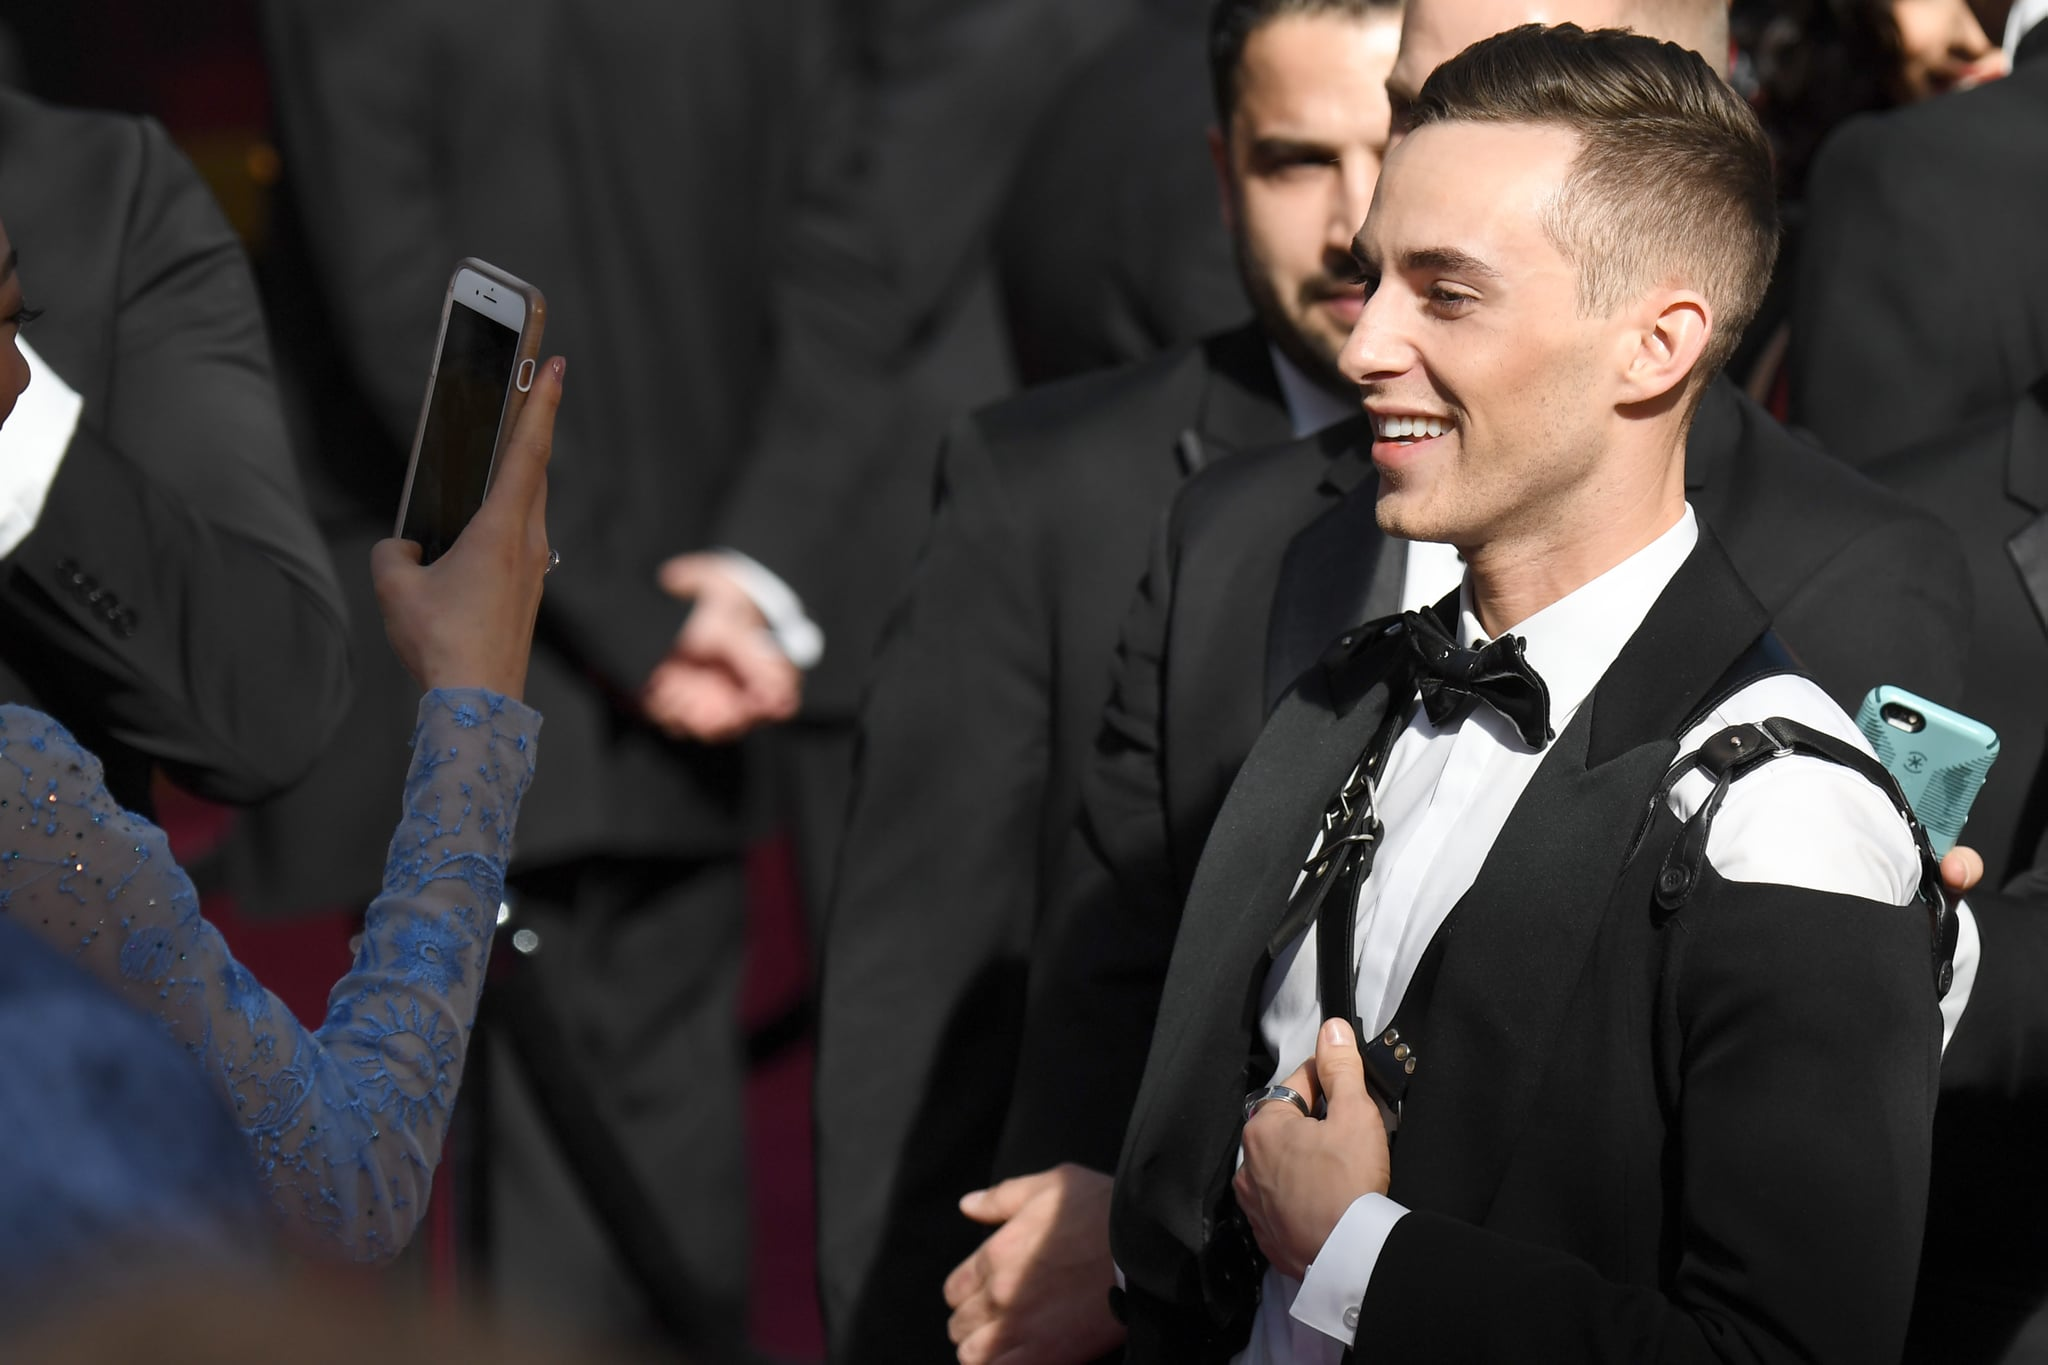 US Olympic medalist Adam Rippon (R) arrives for the 90th Annual Academy Awards on March 4, 2018, in Hollywood, California.  / AFP PHOTO / Robyn Beck        (Photo credit should read ROBYN BECK/AFP/Getty Images)